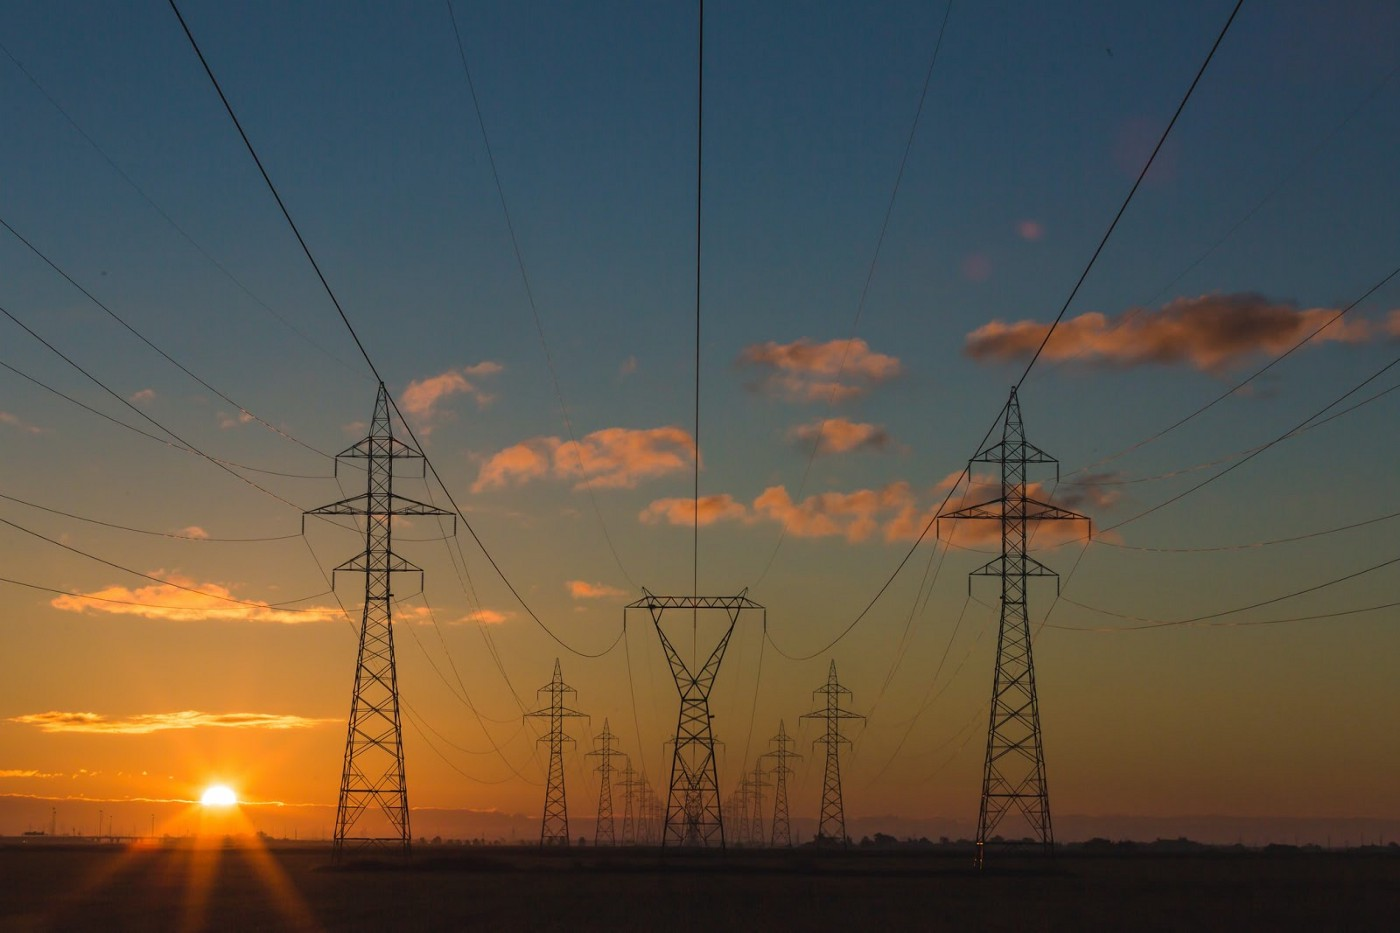 A Brief on Indonesia's Electricity